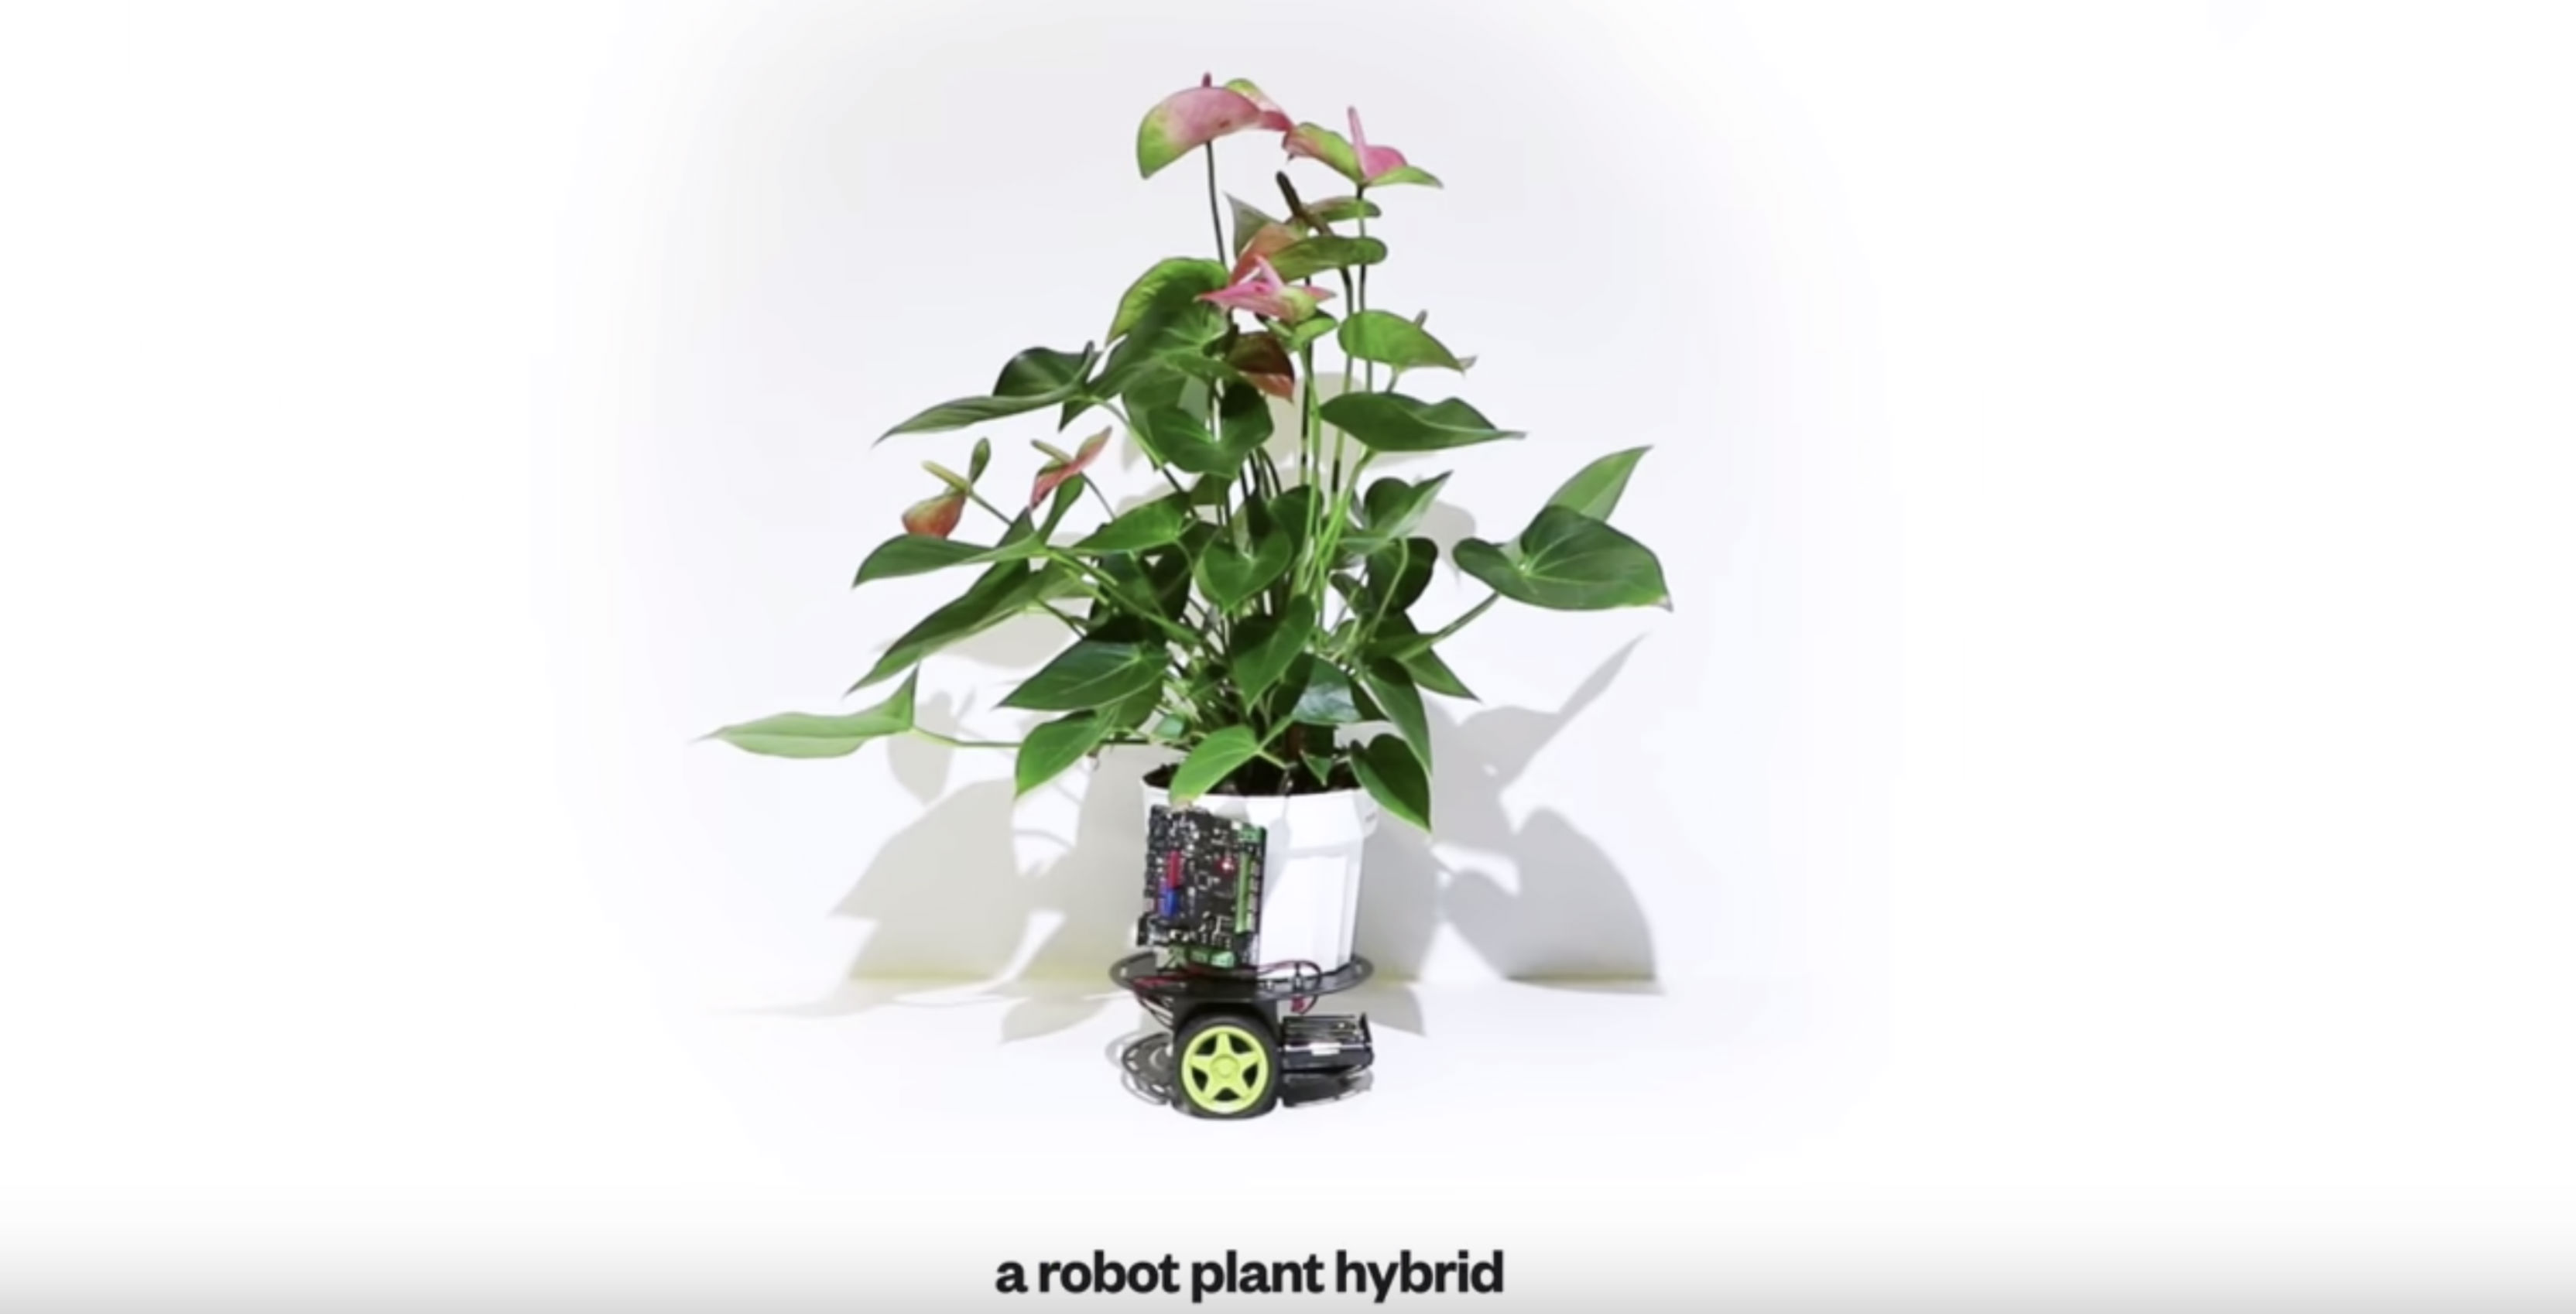 MIT uses robotics to keep plants alive